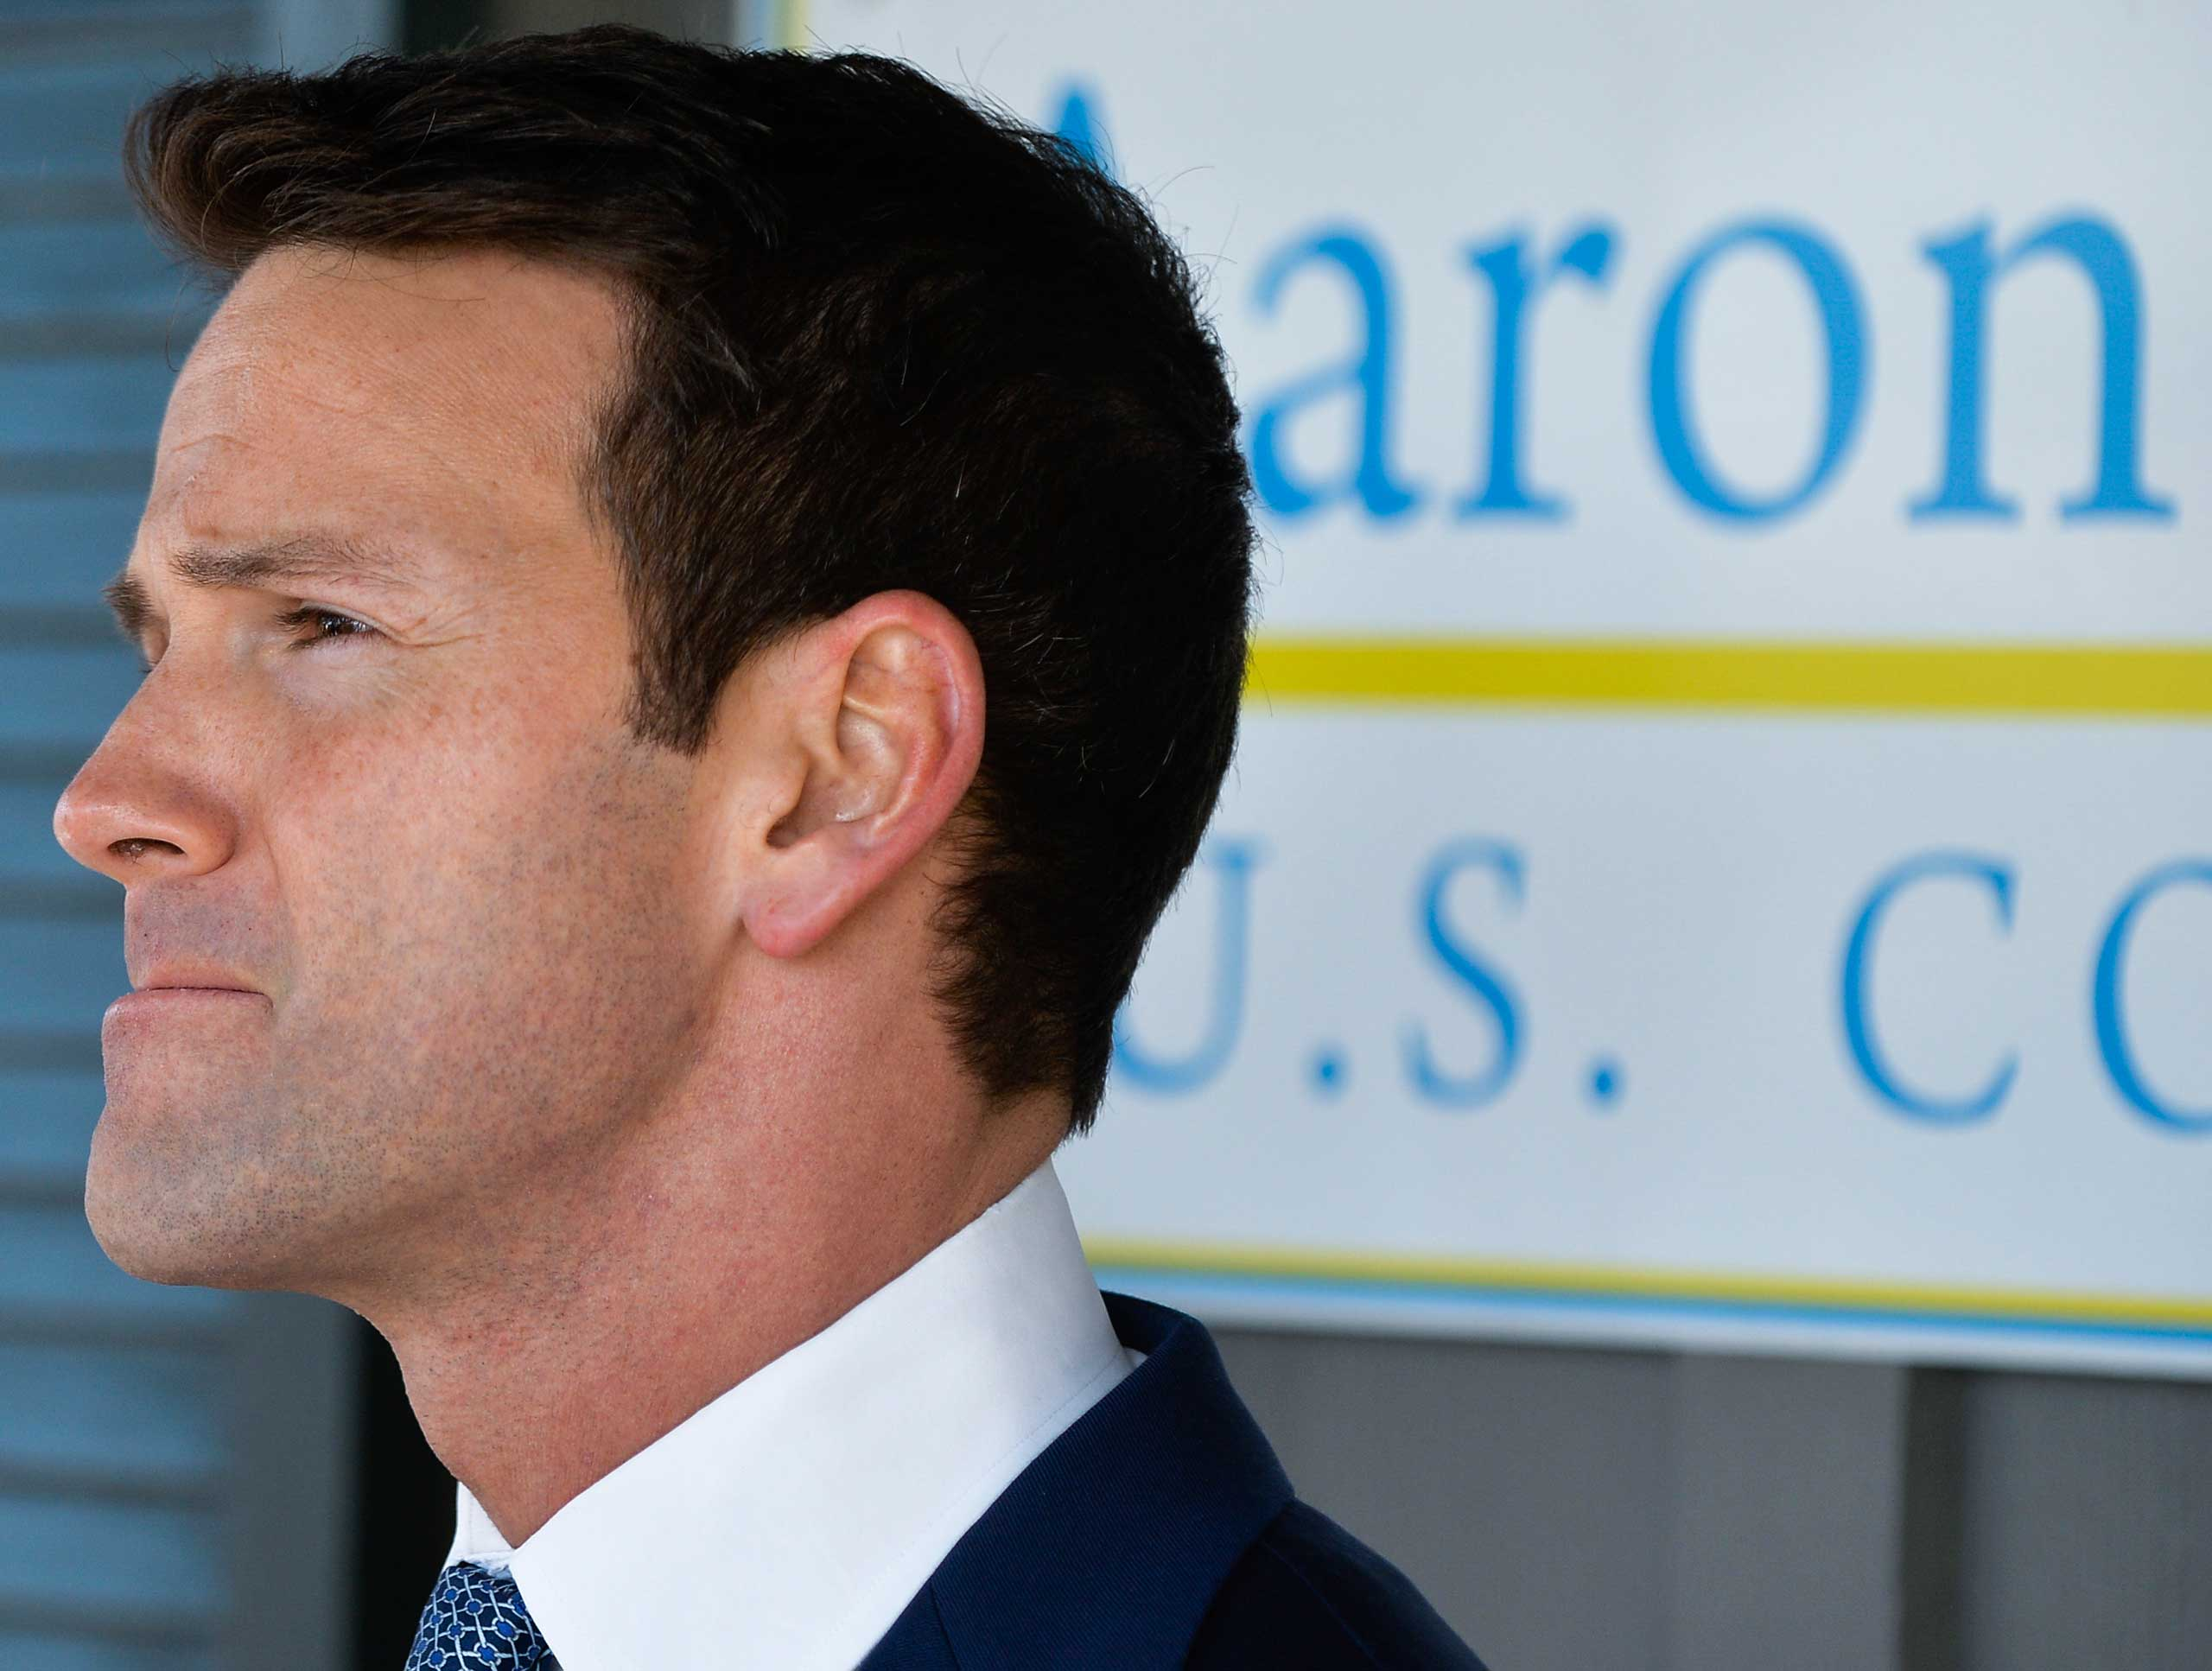 U.S. Rep. Aaron Schock, R-Ill., gives a news conference regarding his recent spending controversies outside his office in Peoria, Ill. March 6, 2015.